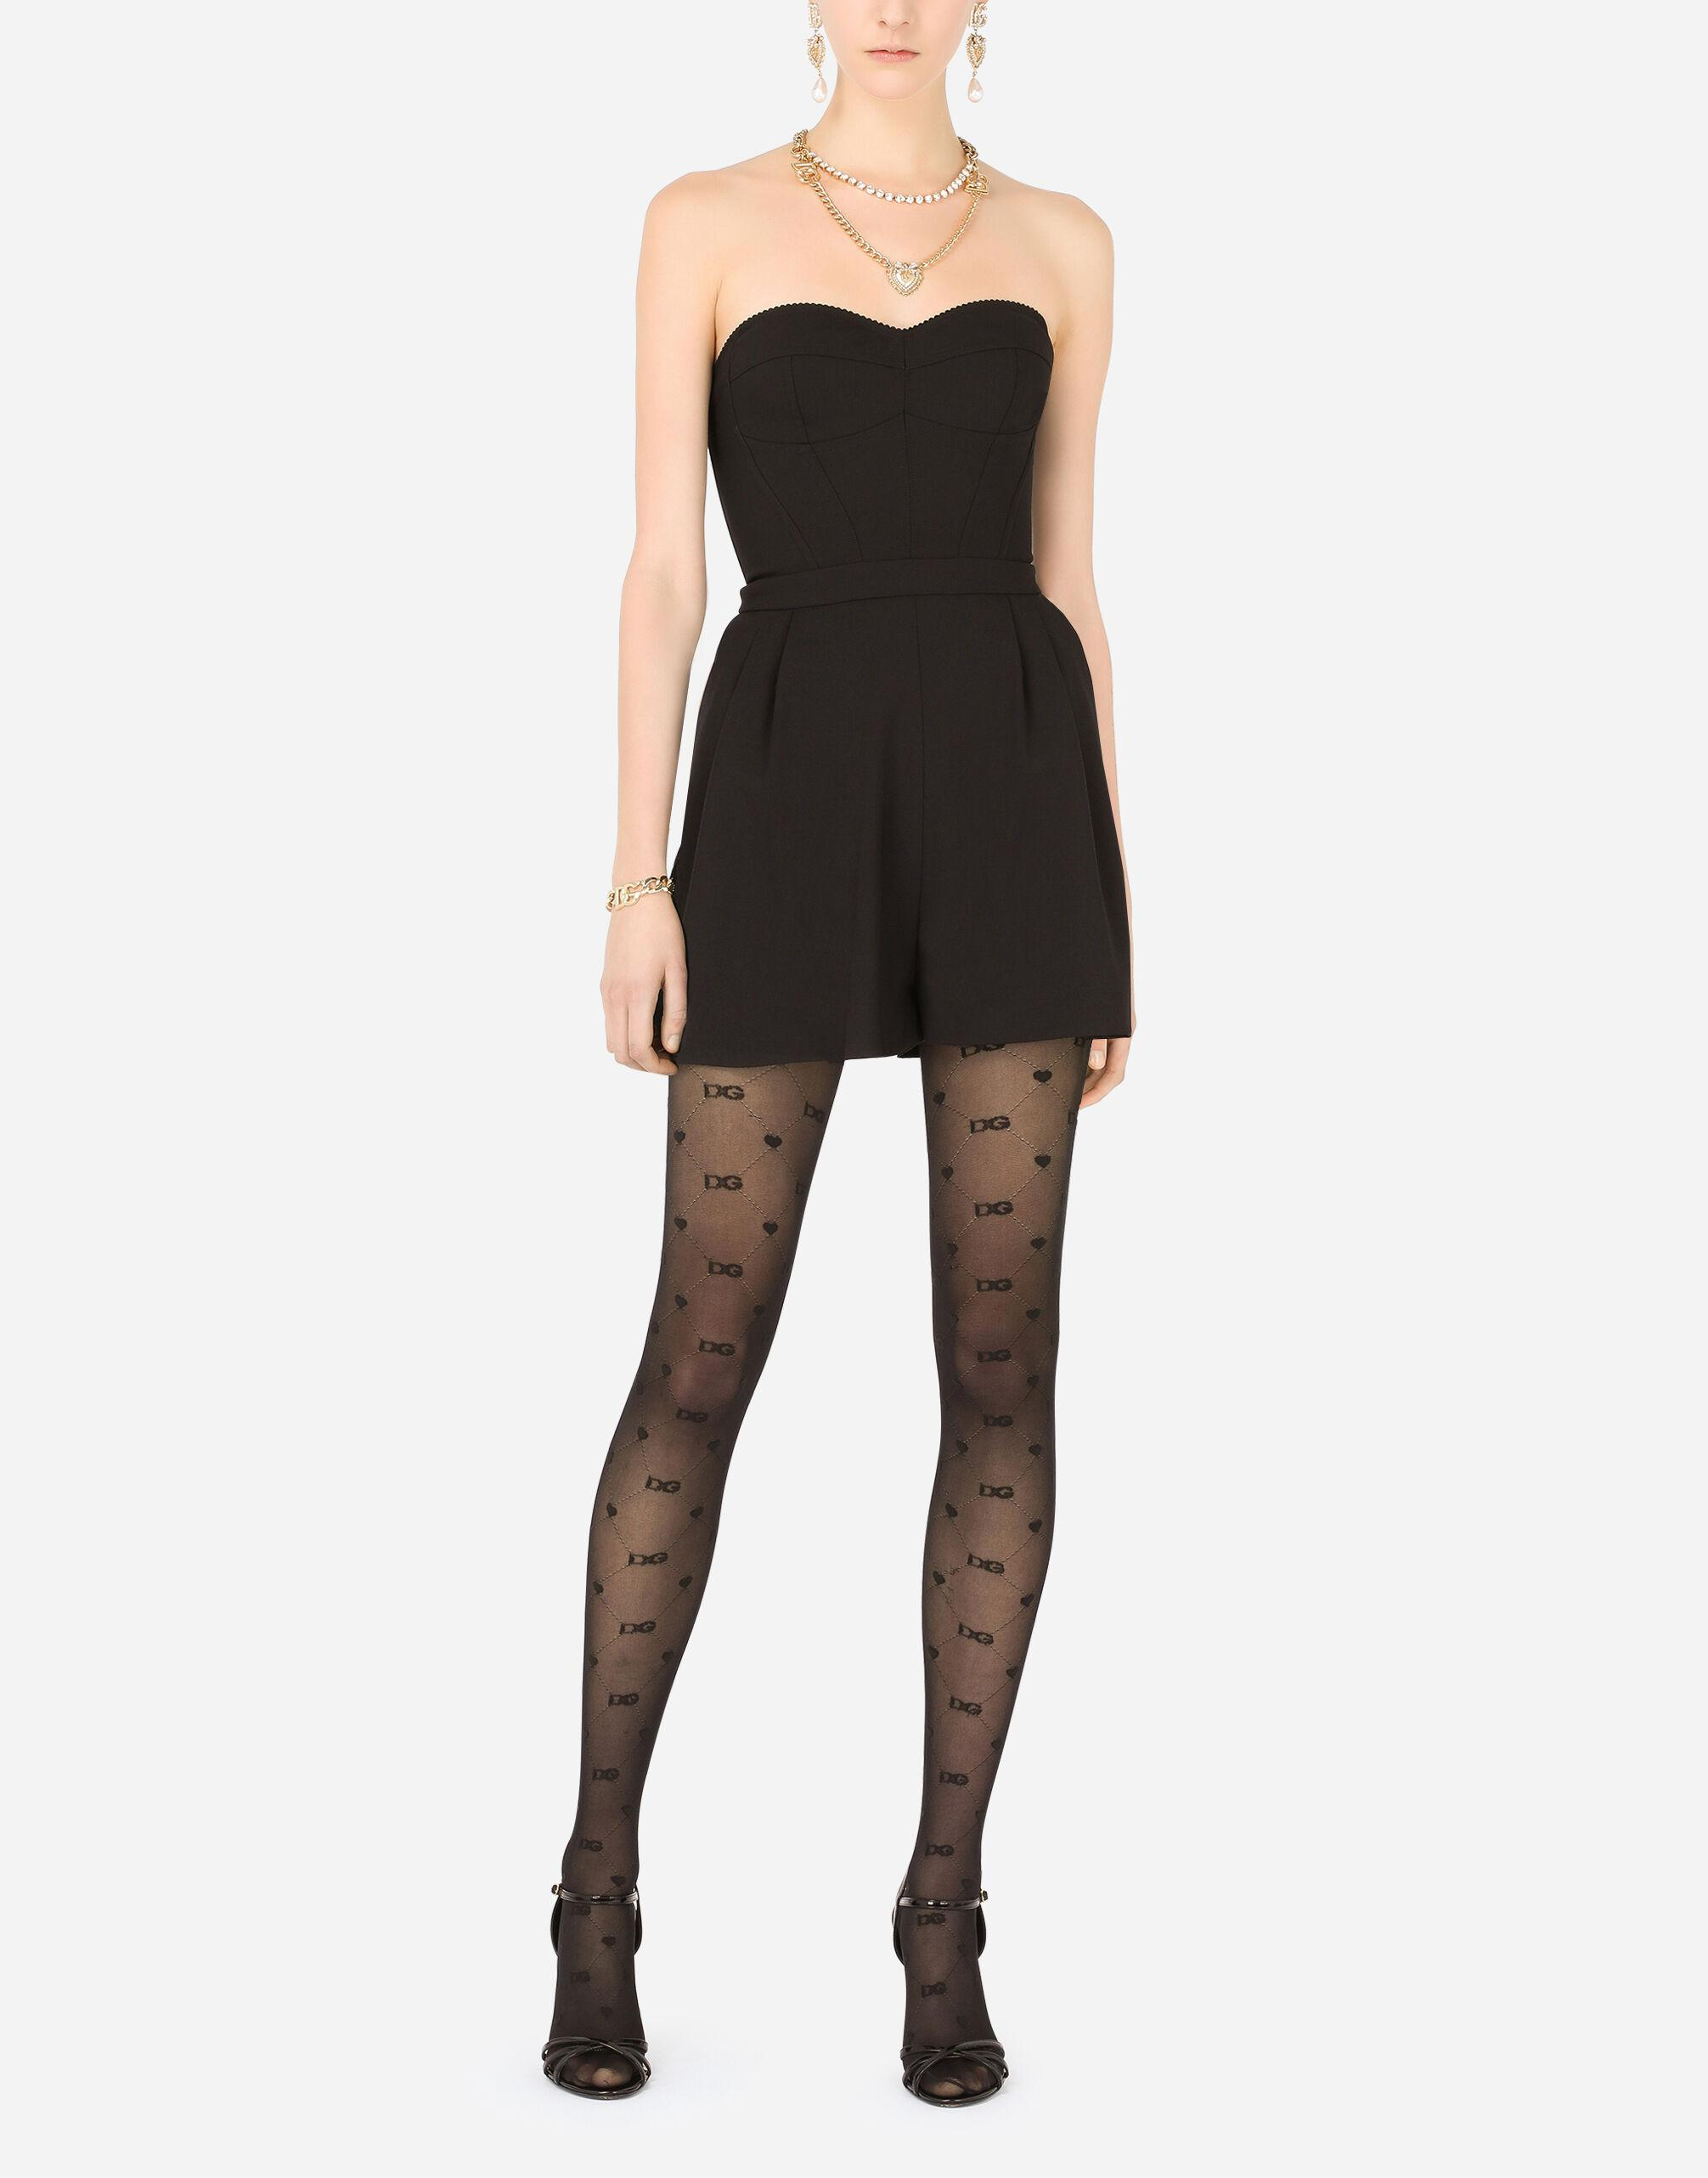 Tights with all-over jacquard DG logo